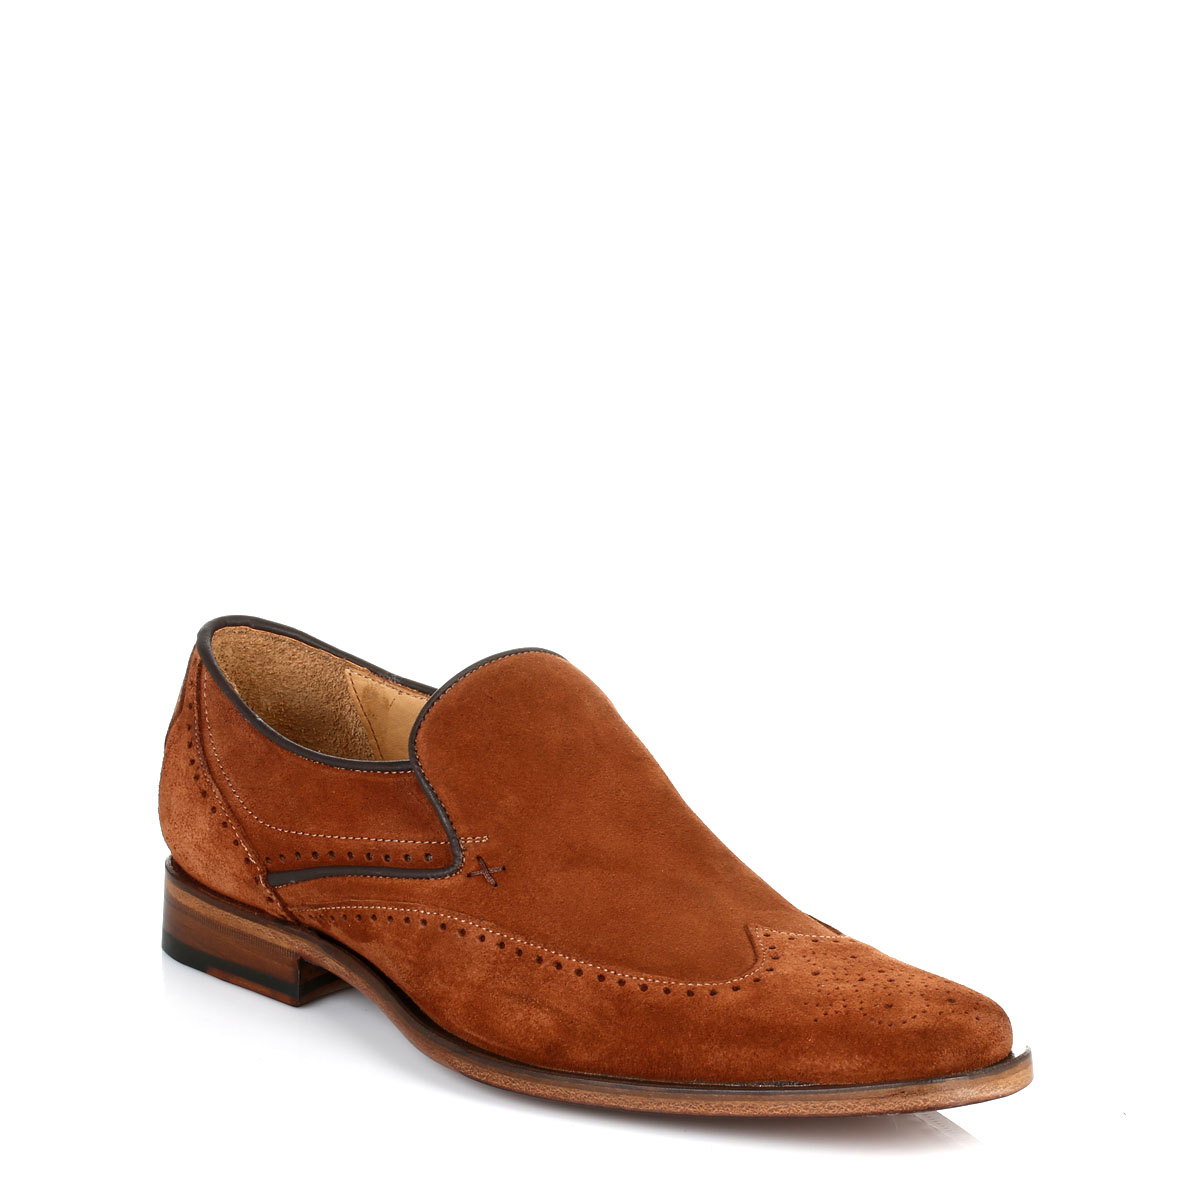 Brown Suede Shoes Mens Loafers